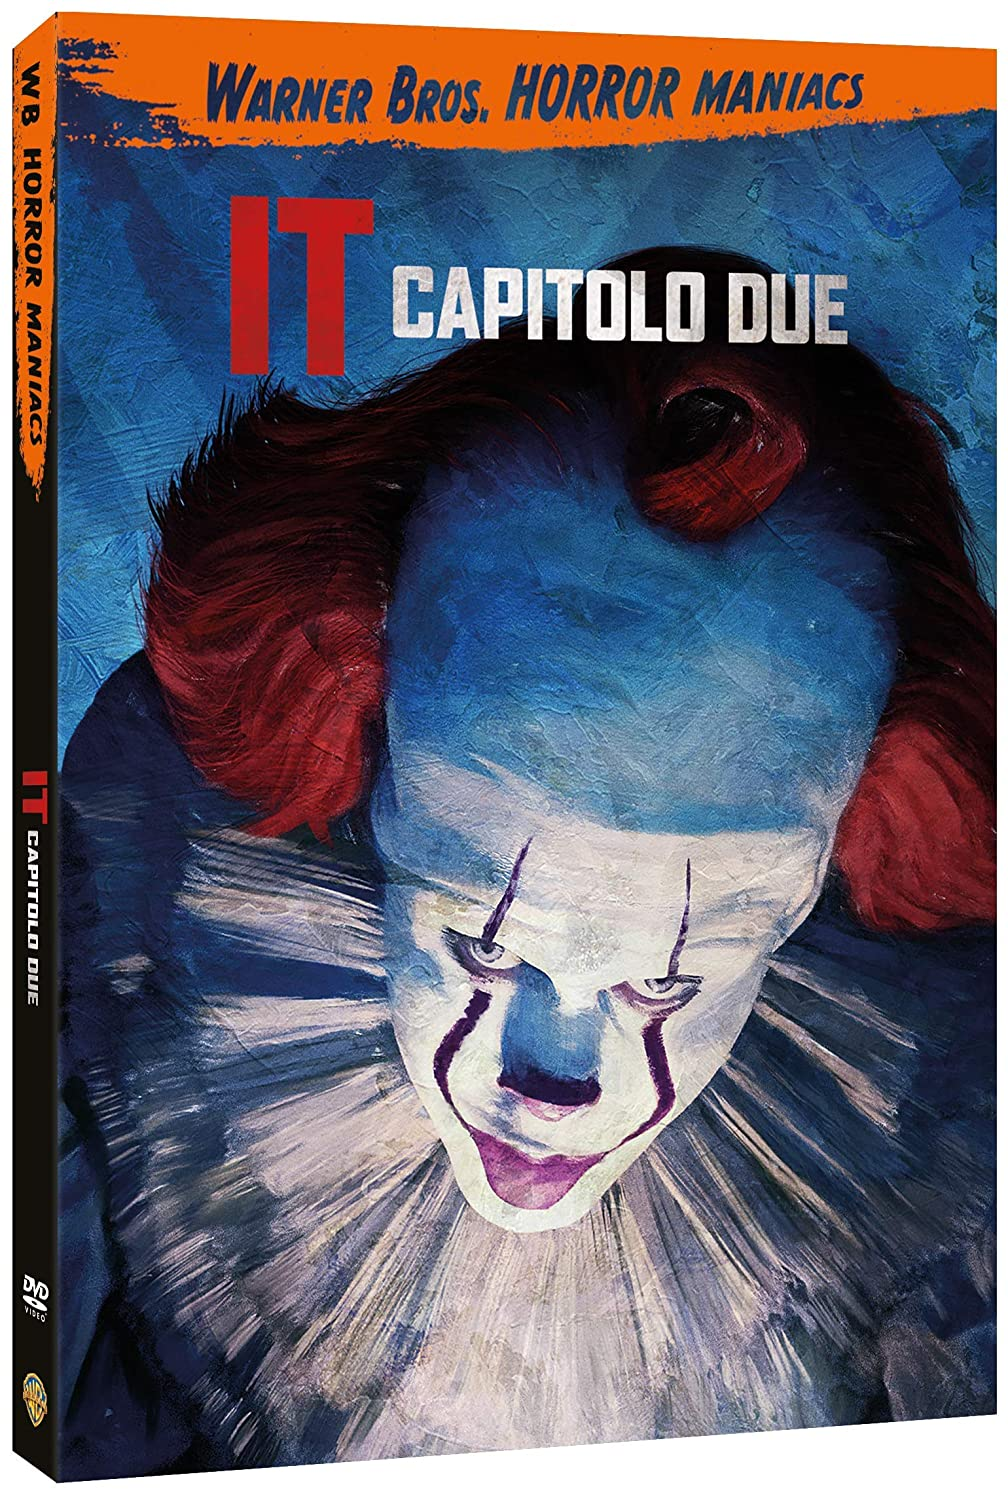 IT CAPITOLO DUE (HORROR MANIACS COLLECTION) (DVD)